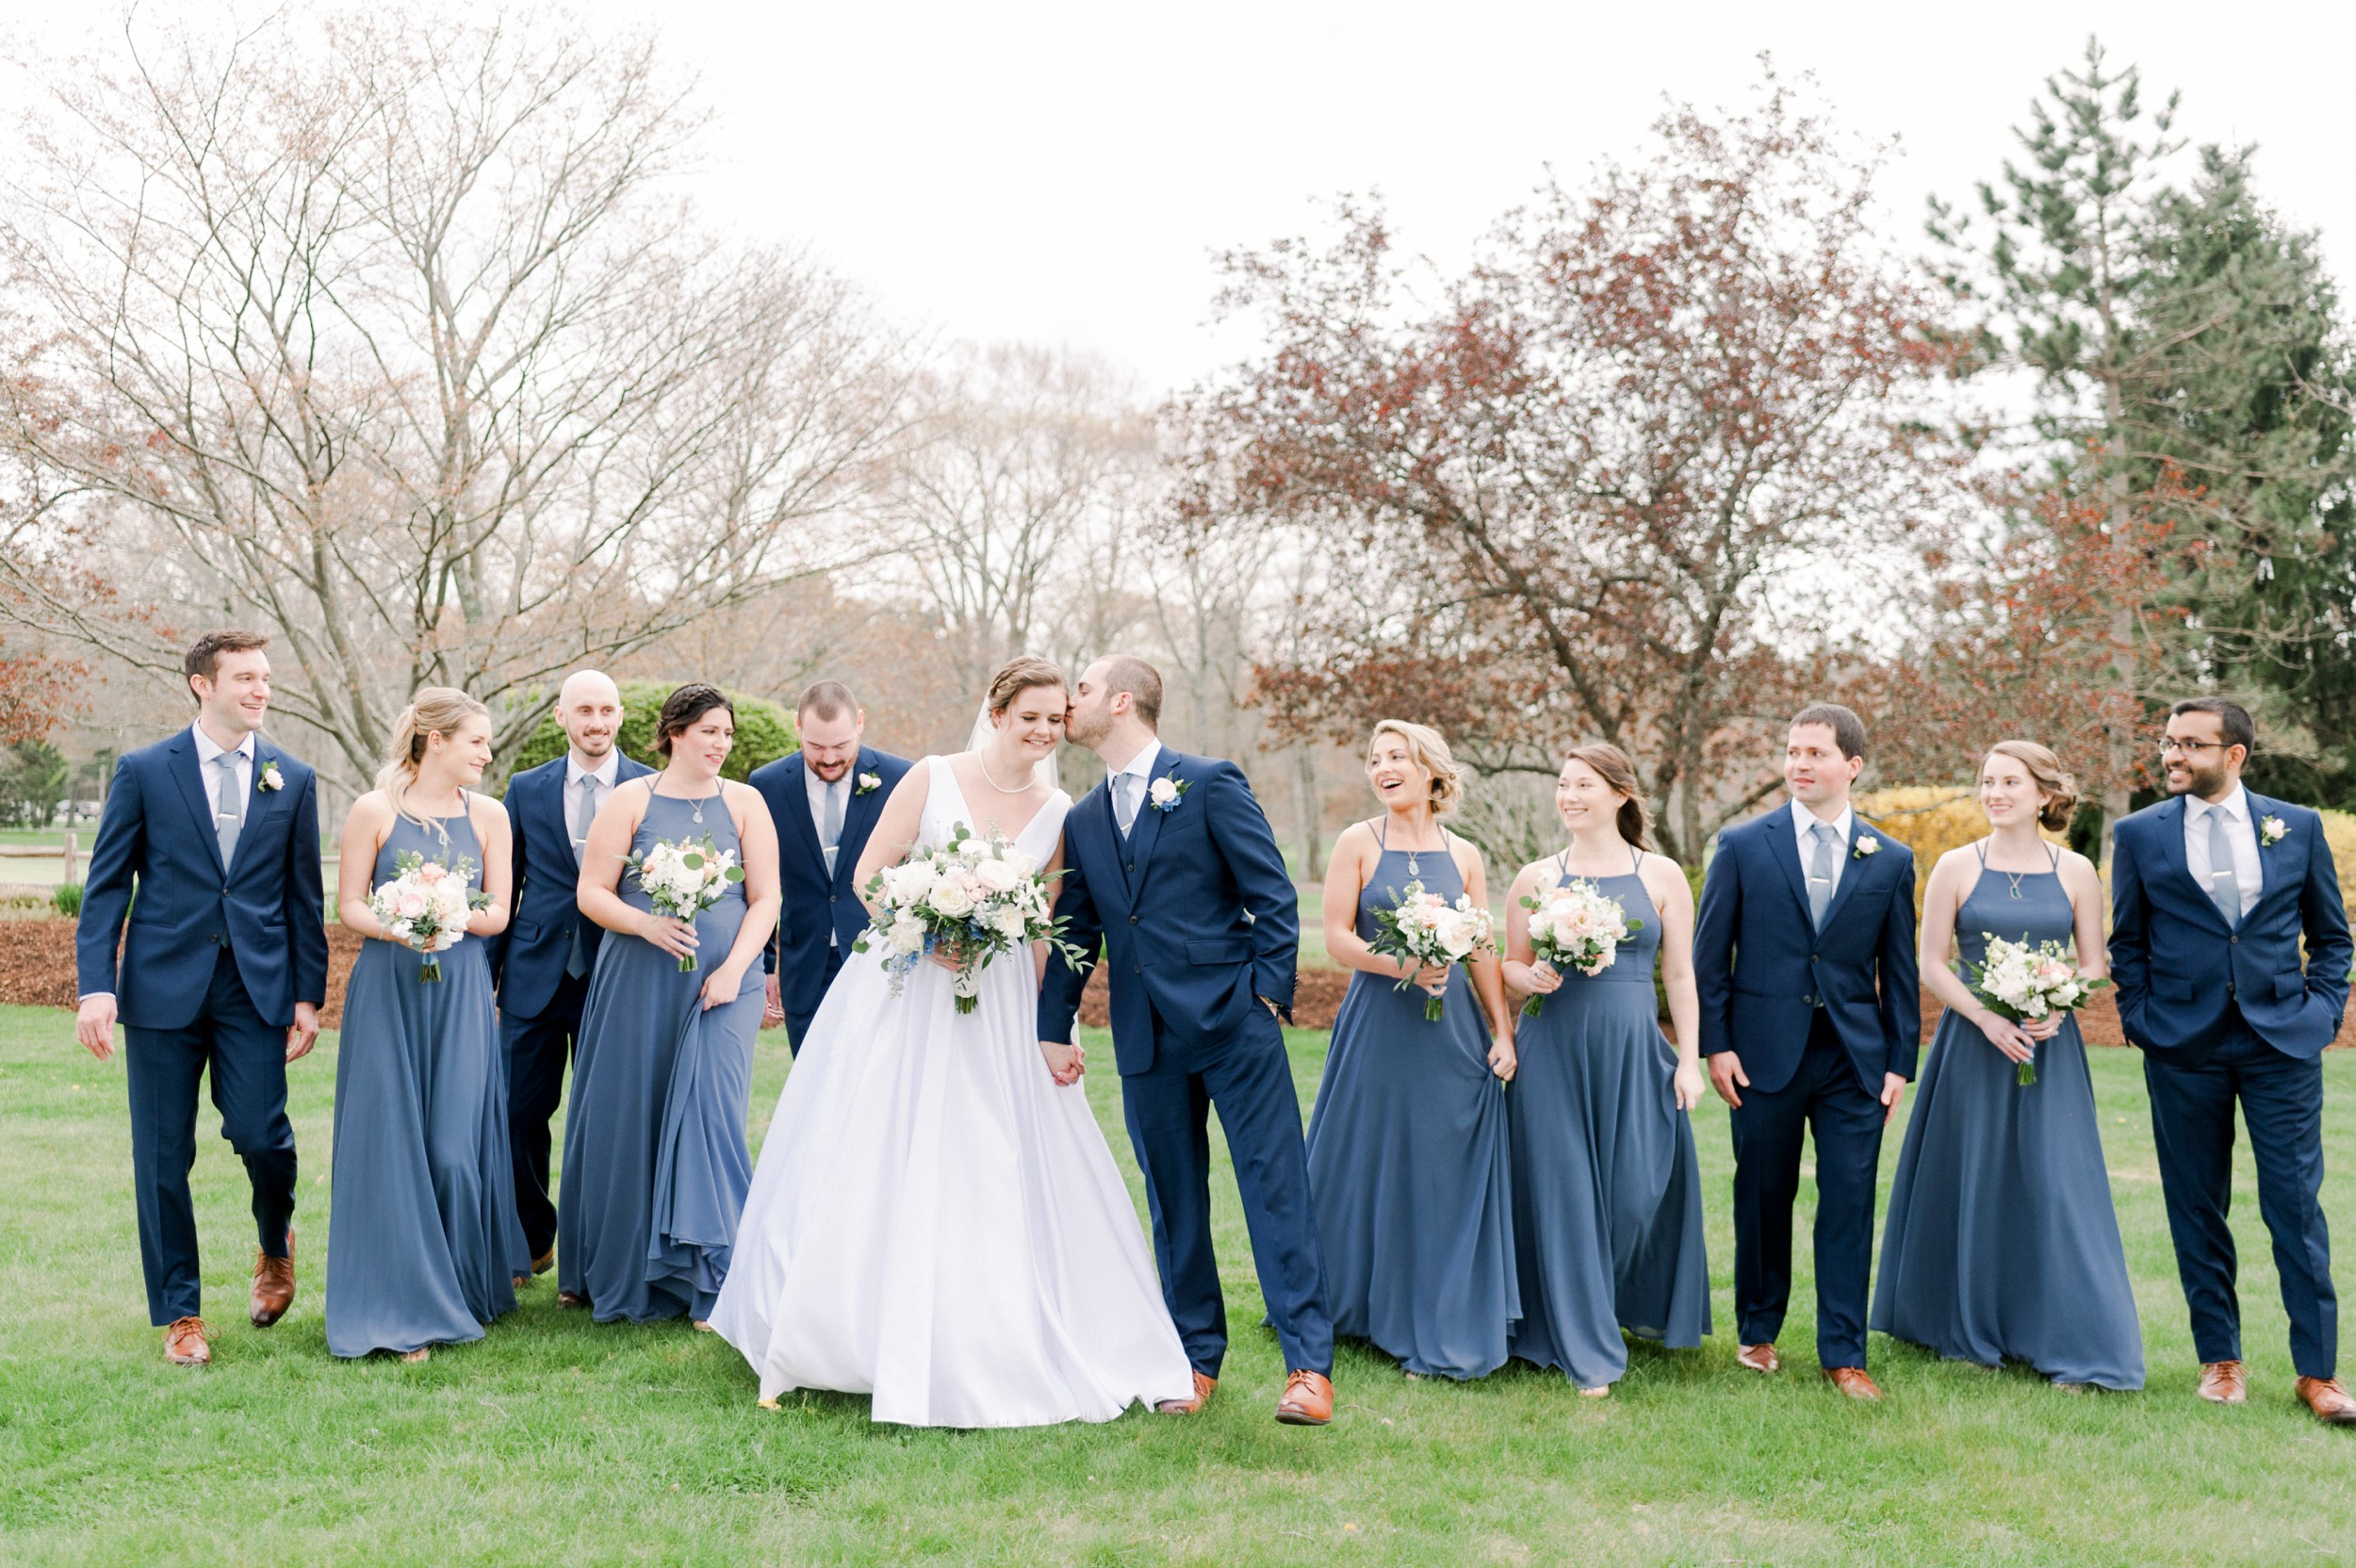 The Villa at Ridder Country Club Spring Wedding East Bridgewater MA First Look dusty blue bridesmaid dresses and navy suits wedding party portraits